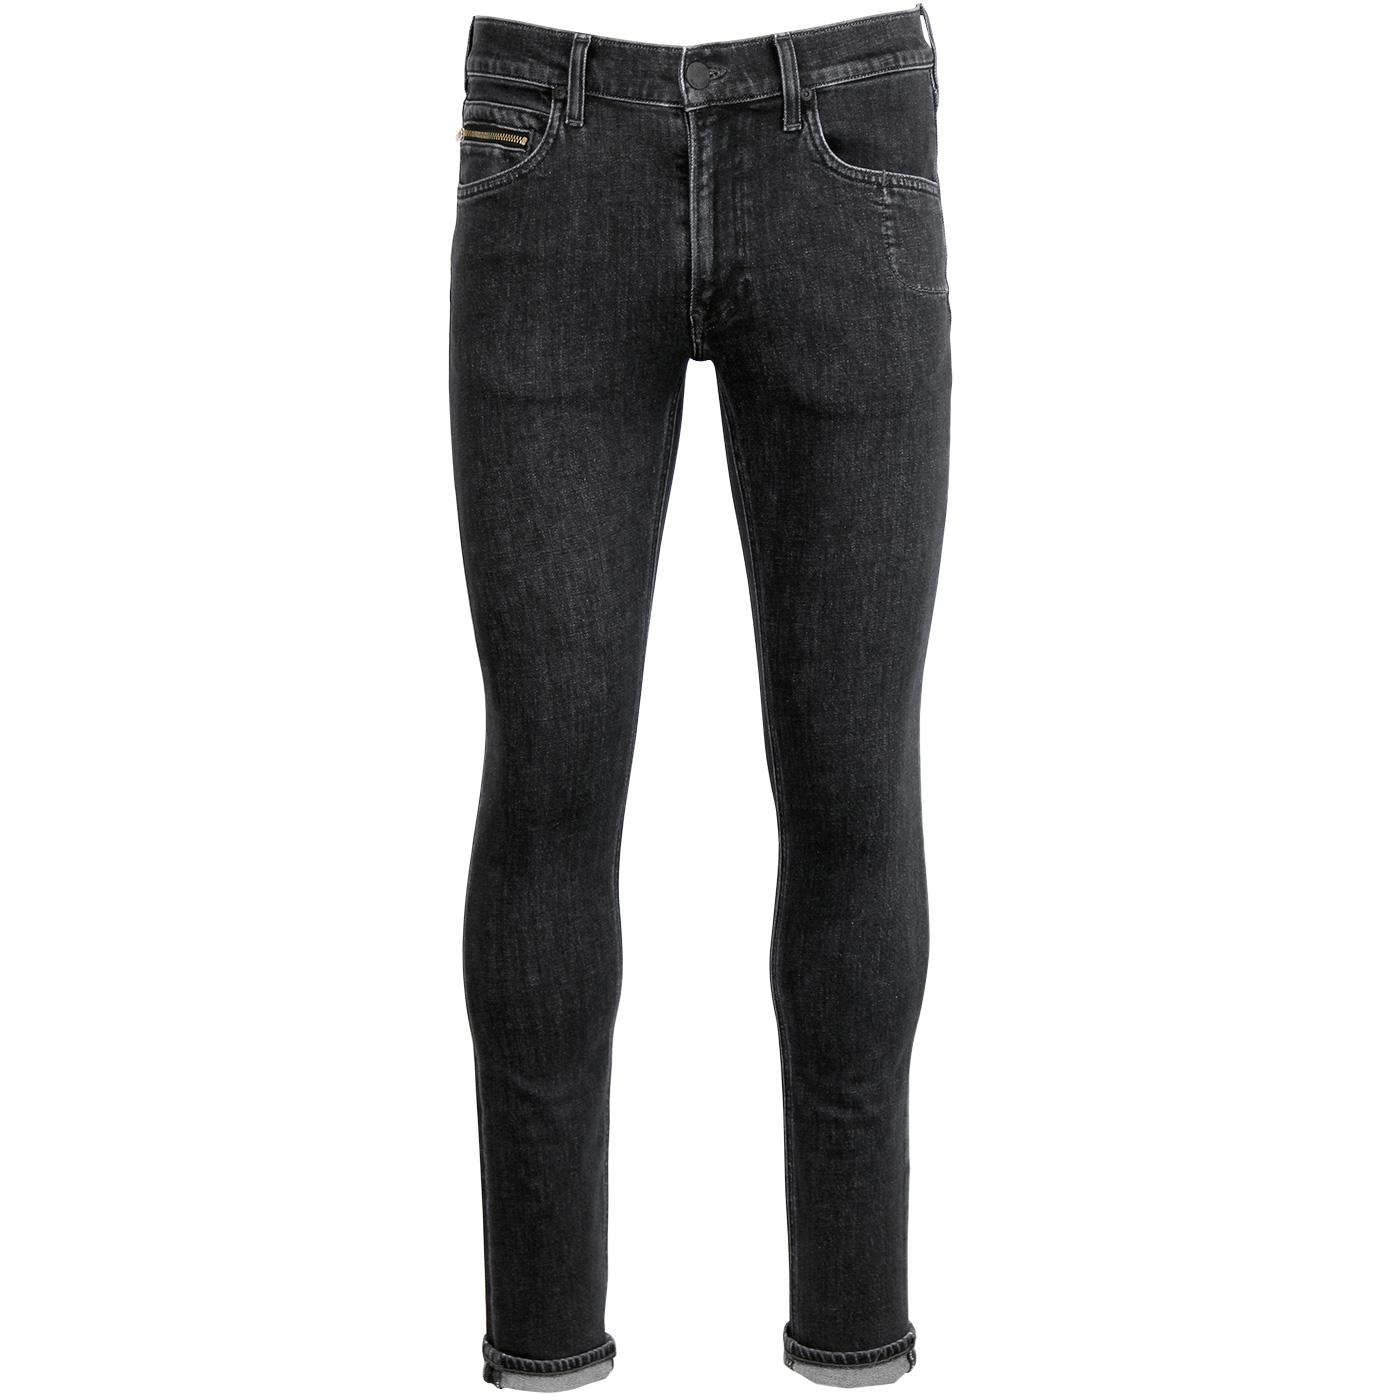 Luke Festival LEE Slim Tapered Retro Denim Jeans